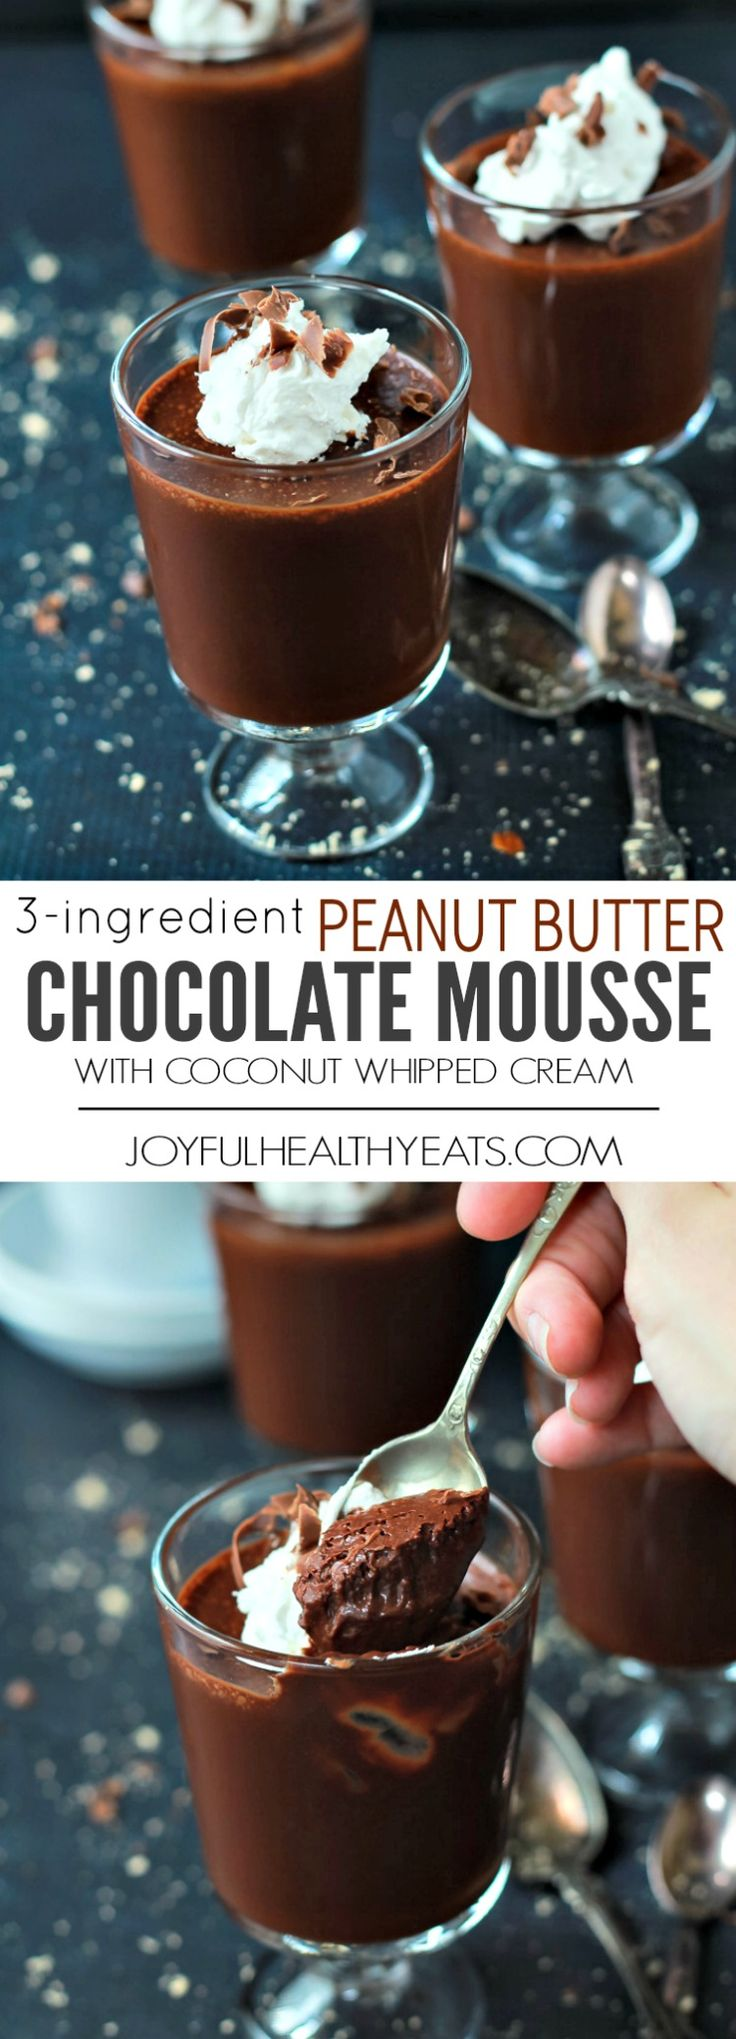 The easiest 3 ingredient Peanut Butter Chocolate Mousse you will ever make! This decadent Mousse is topped with homemade Coconut Whipped Cream to make absolutely perfection in a dessert! | joyfulhealthyeats.com #recipes #glutenfree #paleo